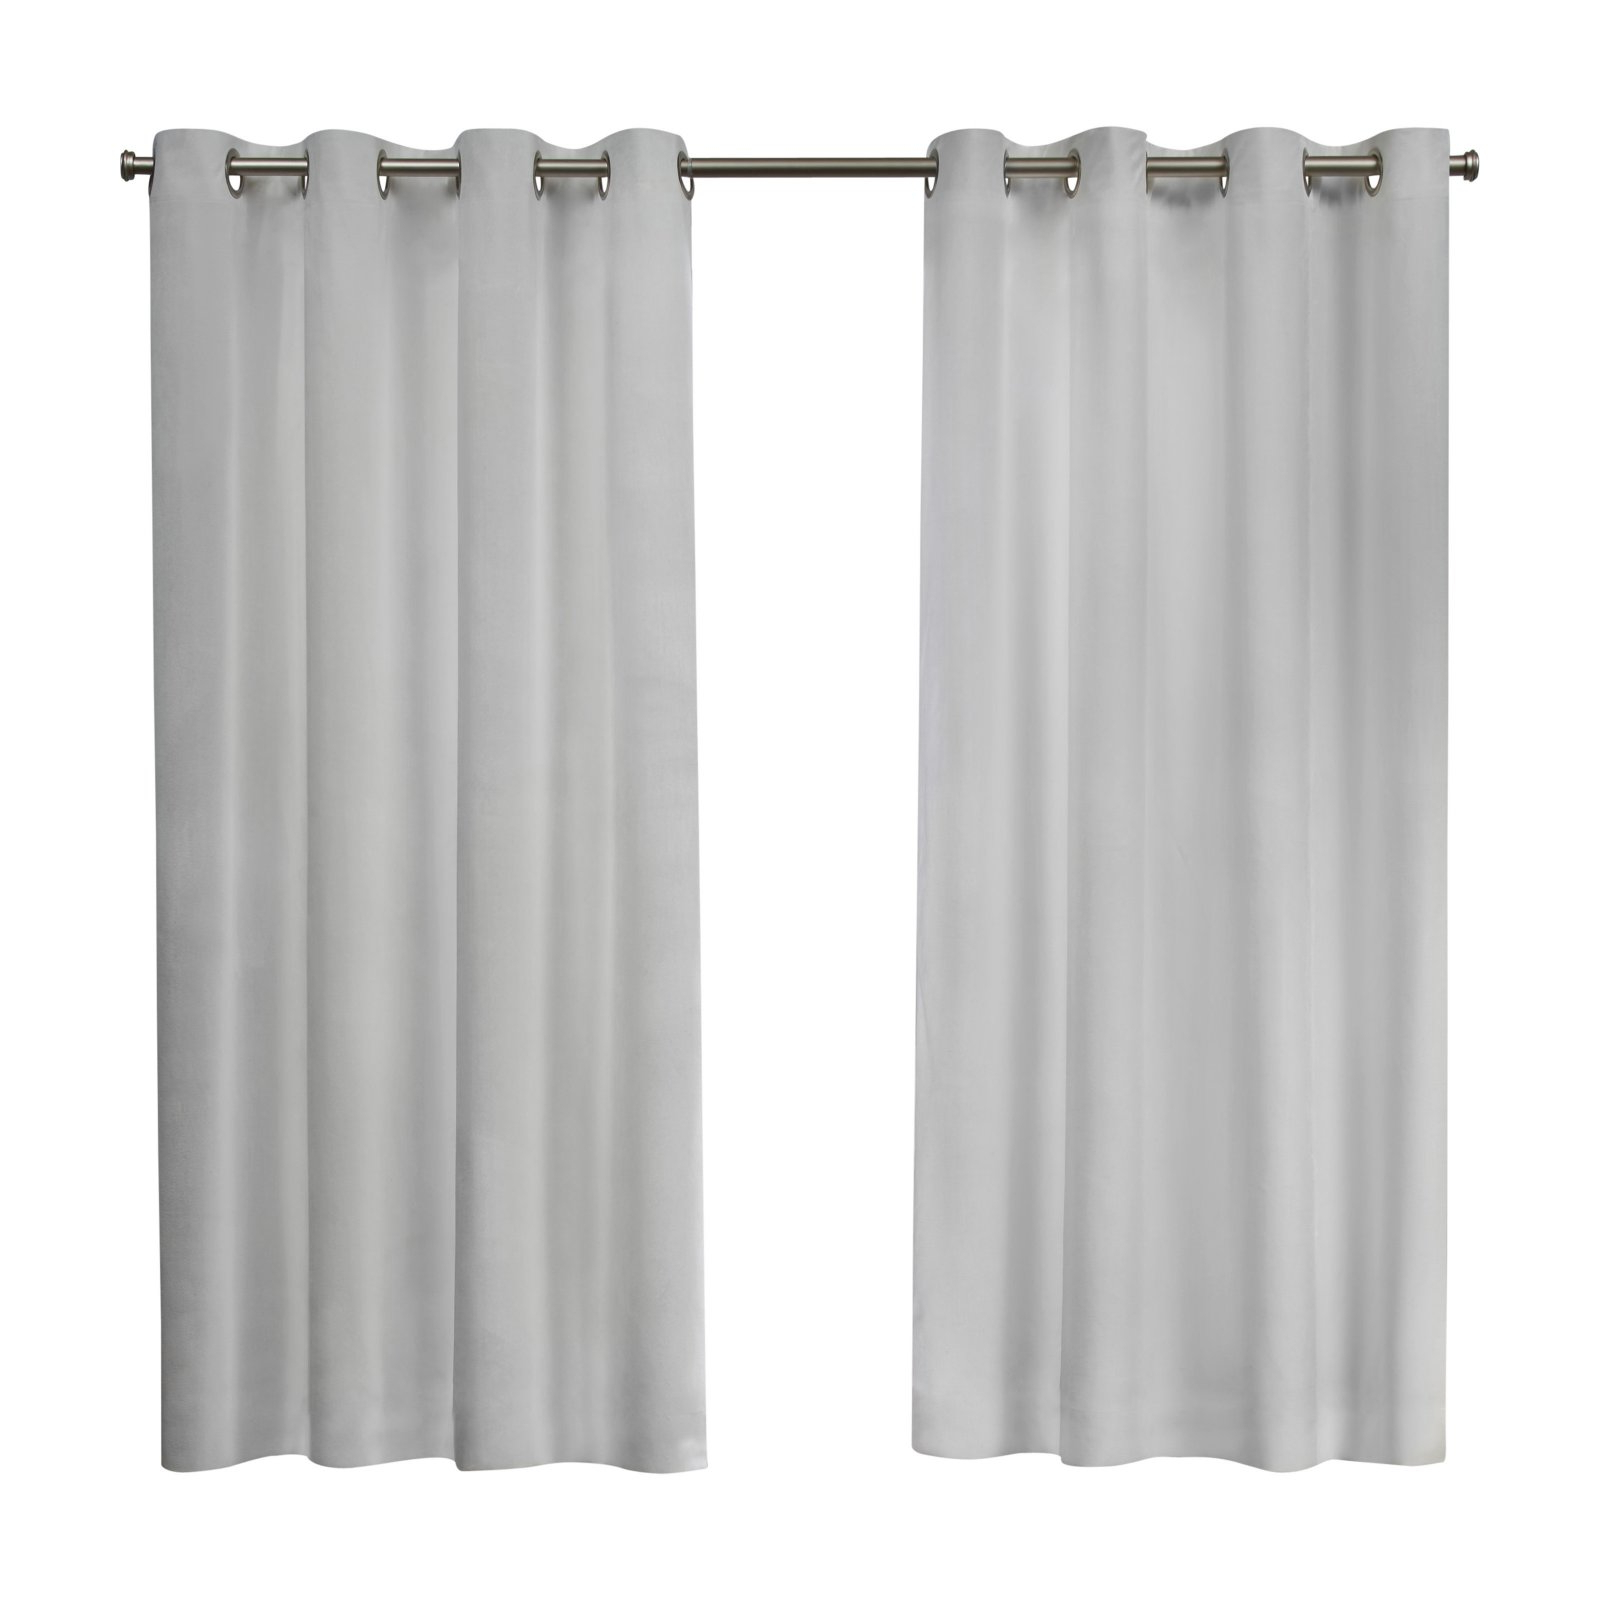 Velvet Heavyweight Grommet Top Curtain Panel Pairs Pertaining To Best And Newest Exclusive Home Curtains 2 Pack Velvet Heavyweight Grommet Top Curtain Panels (View 6 of 20)